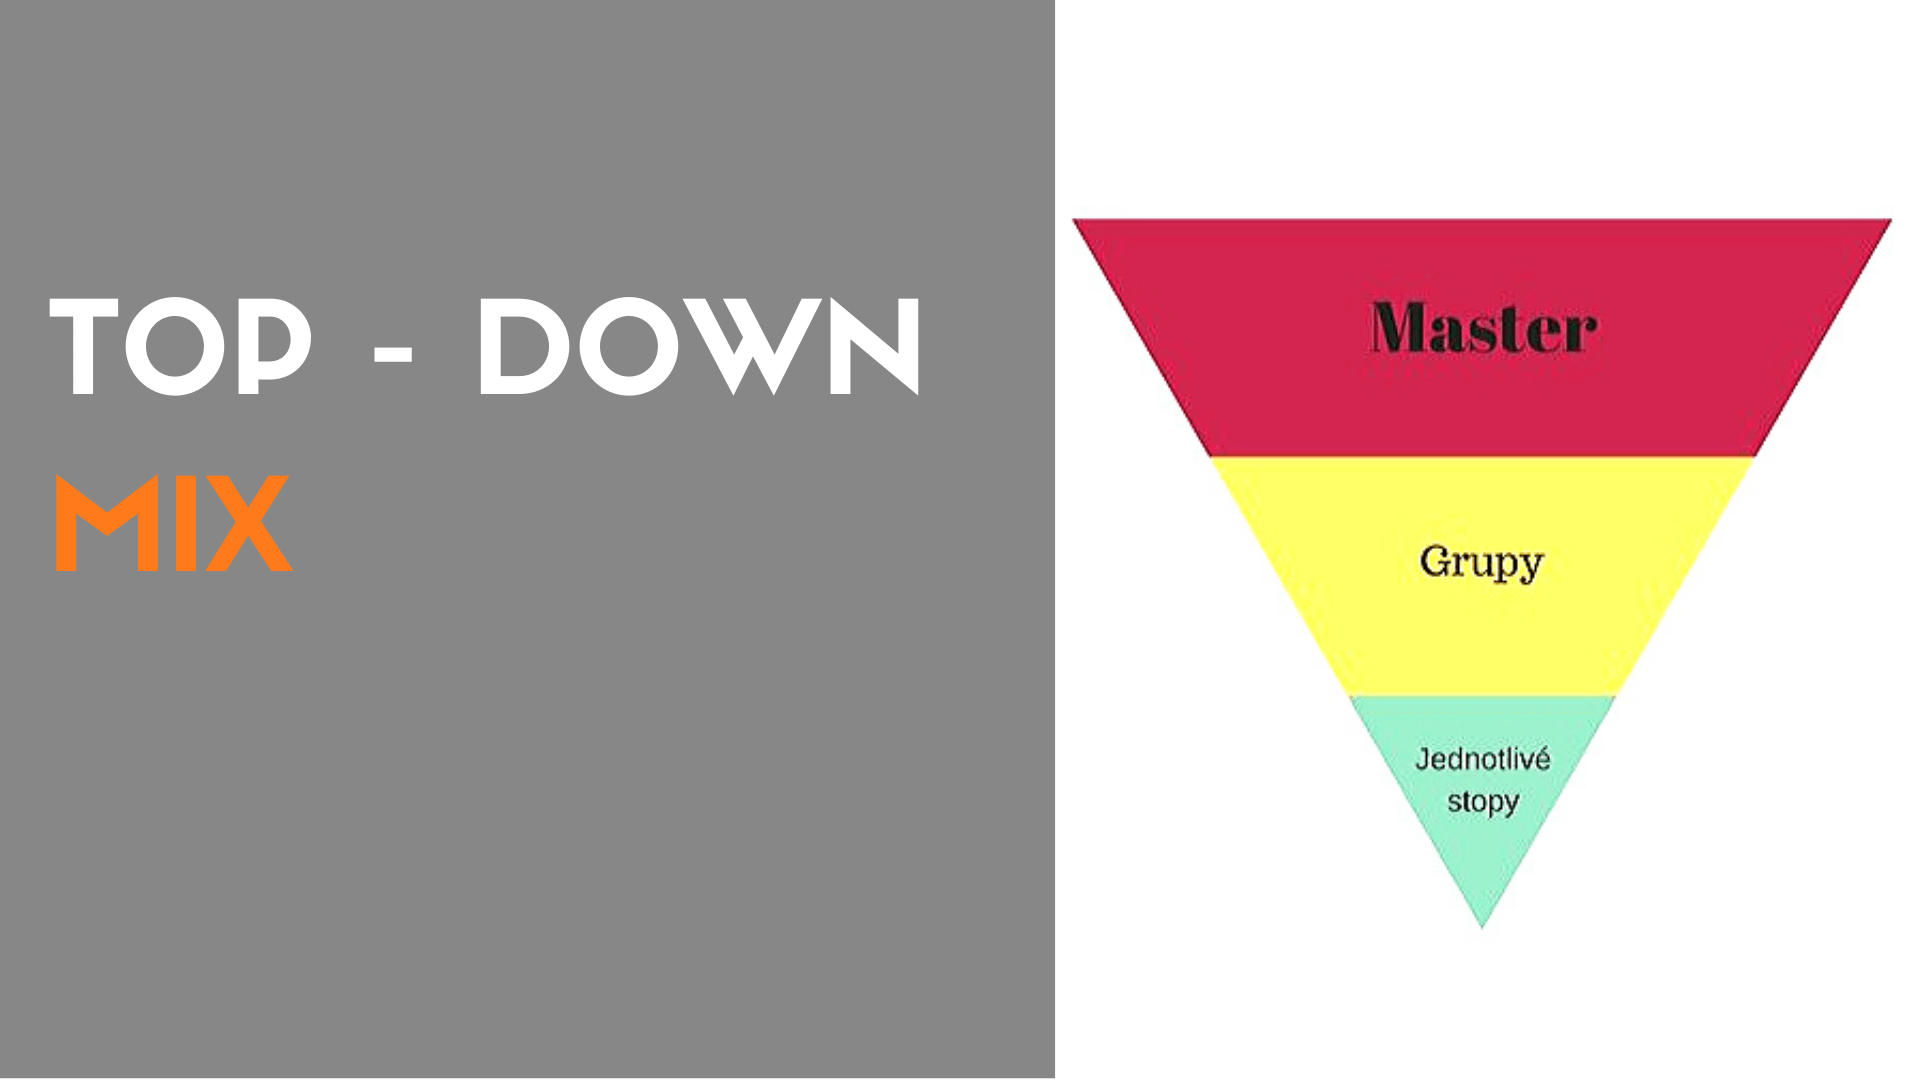 Top – Down Mix